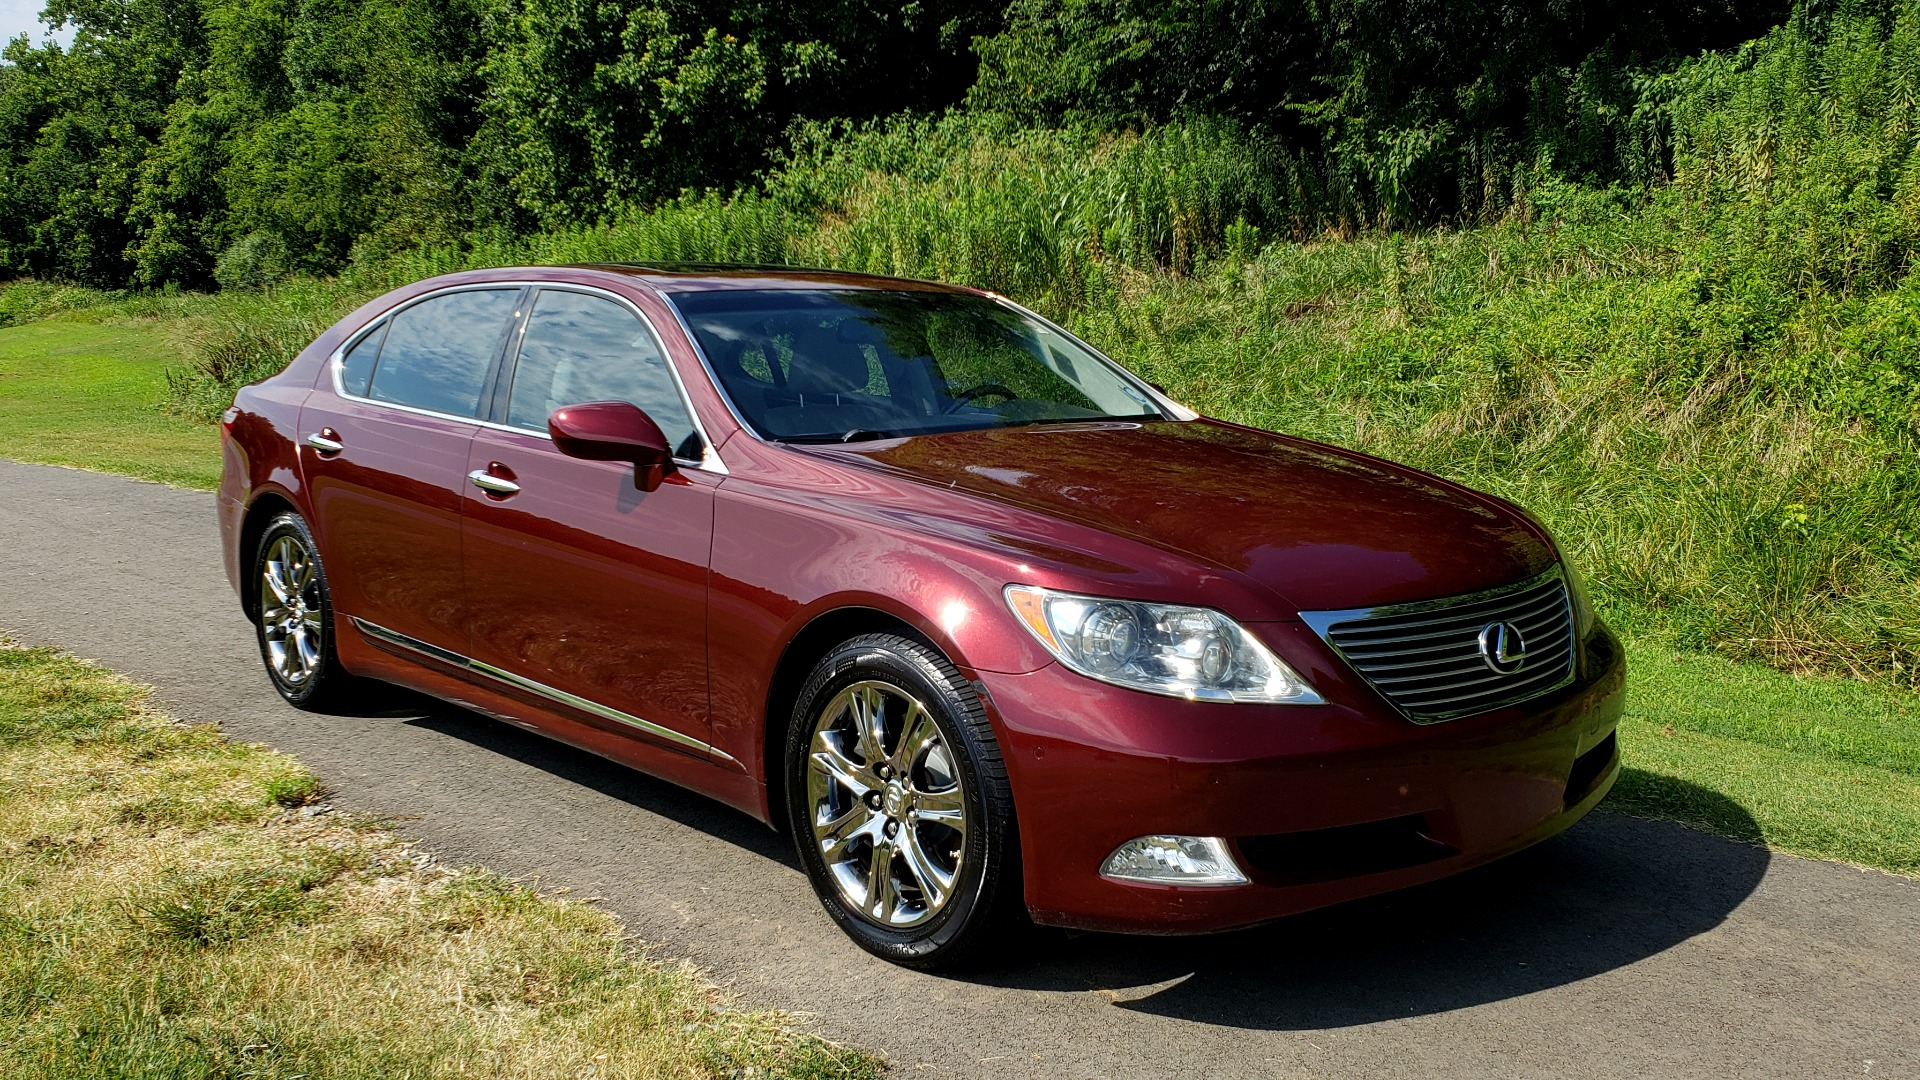 Used 2007 Lexus LS 460 LWB / LUX / NAV / SUNROOF / MARK LEVINSON SND / AIR SUSP for sale Sold at Formula Imports in Charlotte NC 28227 4